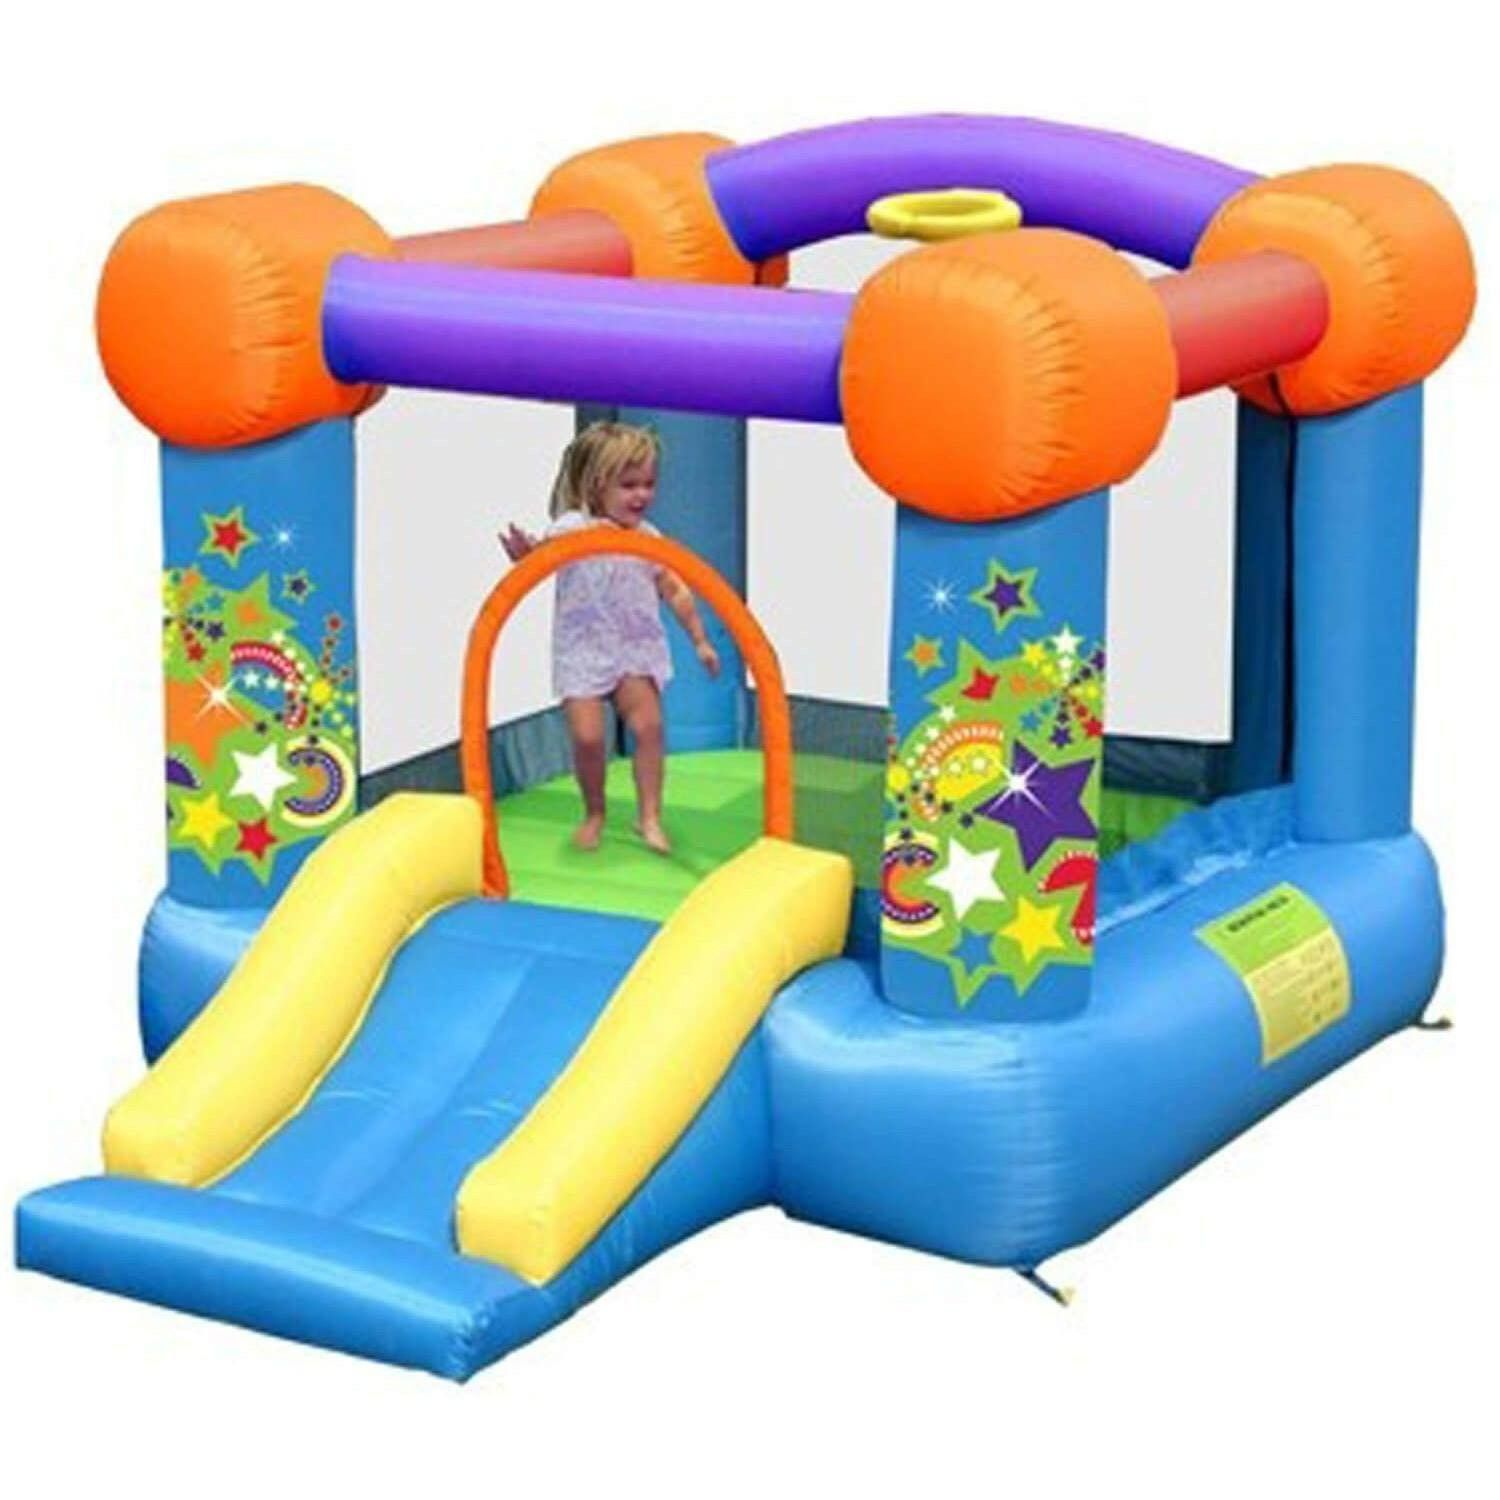 Pin on bounce houses